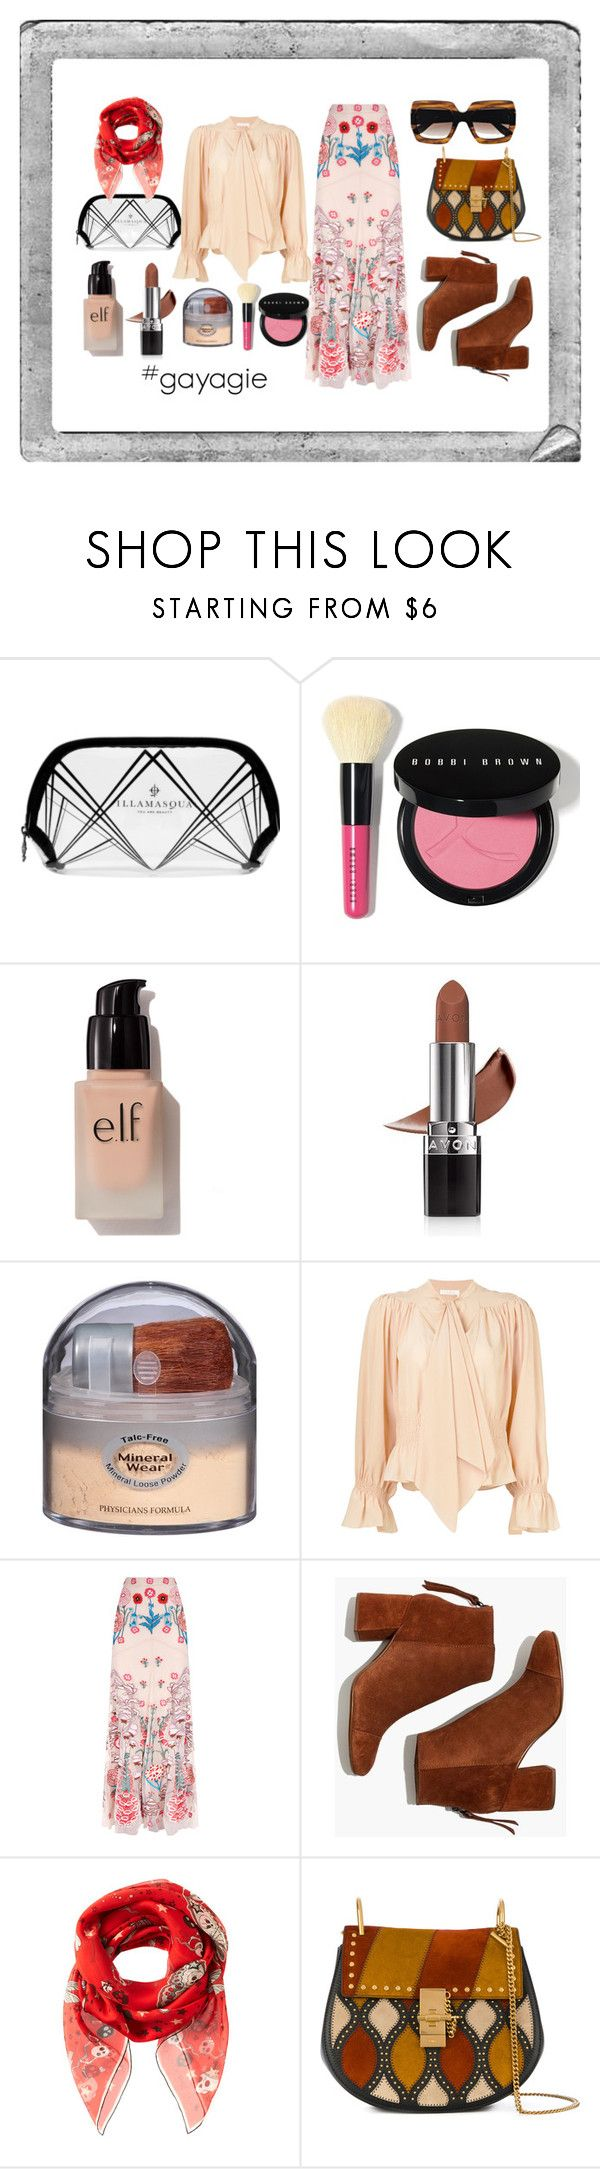 """""""Flowery Chic"""" by anggiswastika on Polyvore featuring Illamasqua, Bobbi Brown Cosmetics, e.l.f., Avon, Physicians Formula, Chloé, Temperley London, Madewell, Alexander McQueen and Gucci"""